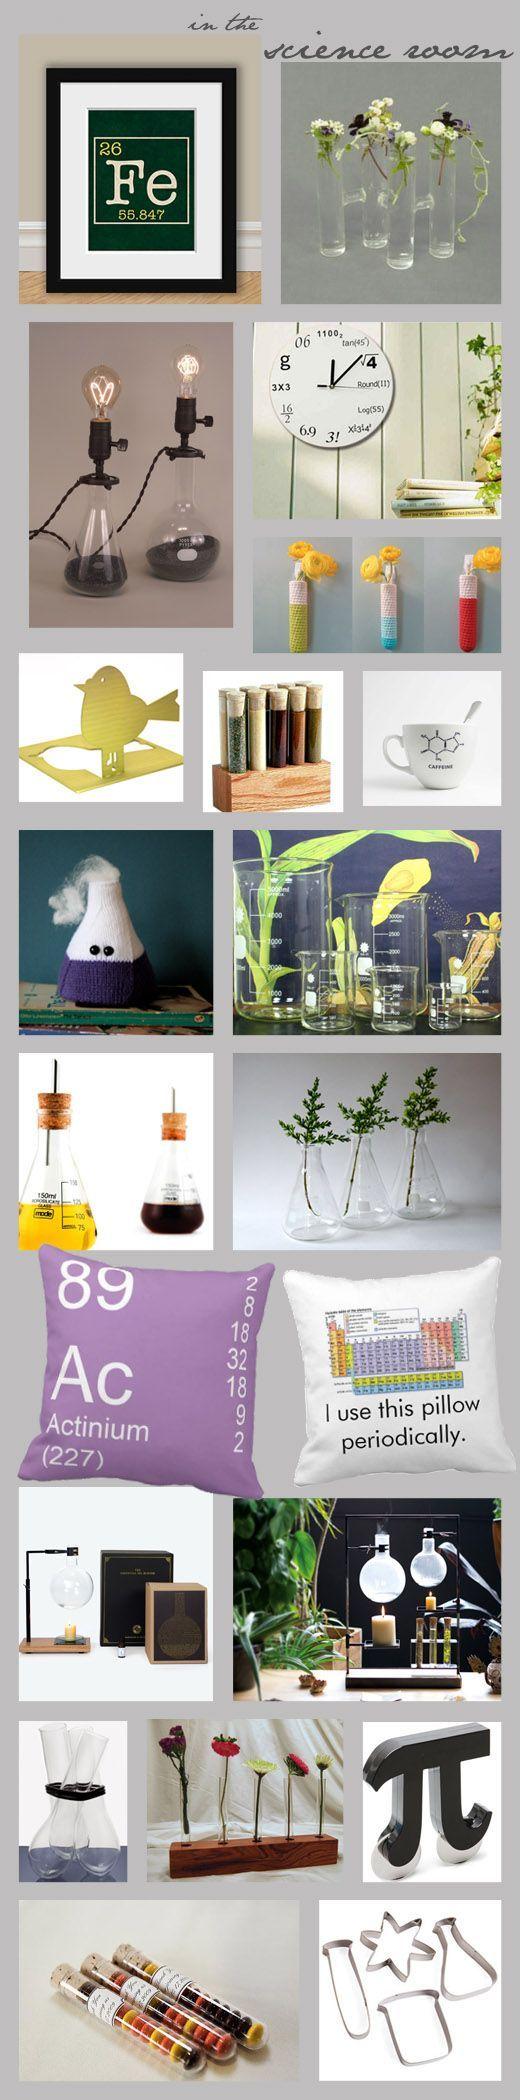 The best images about courtneyus room on pinterest